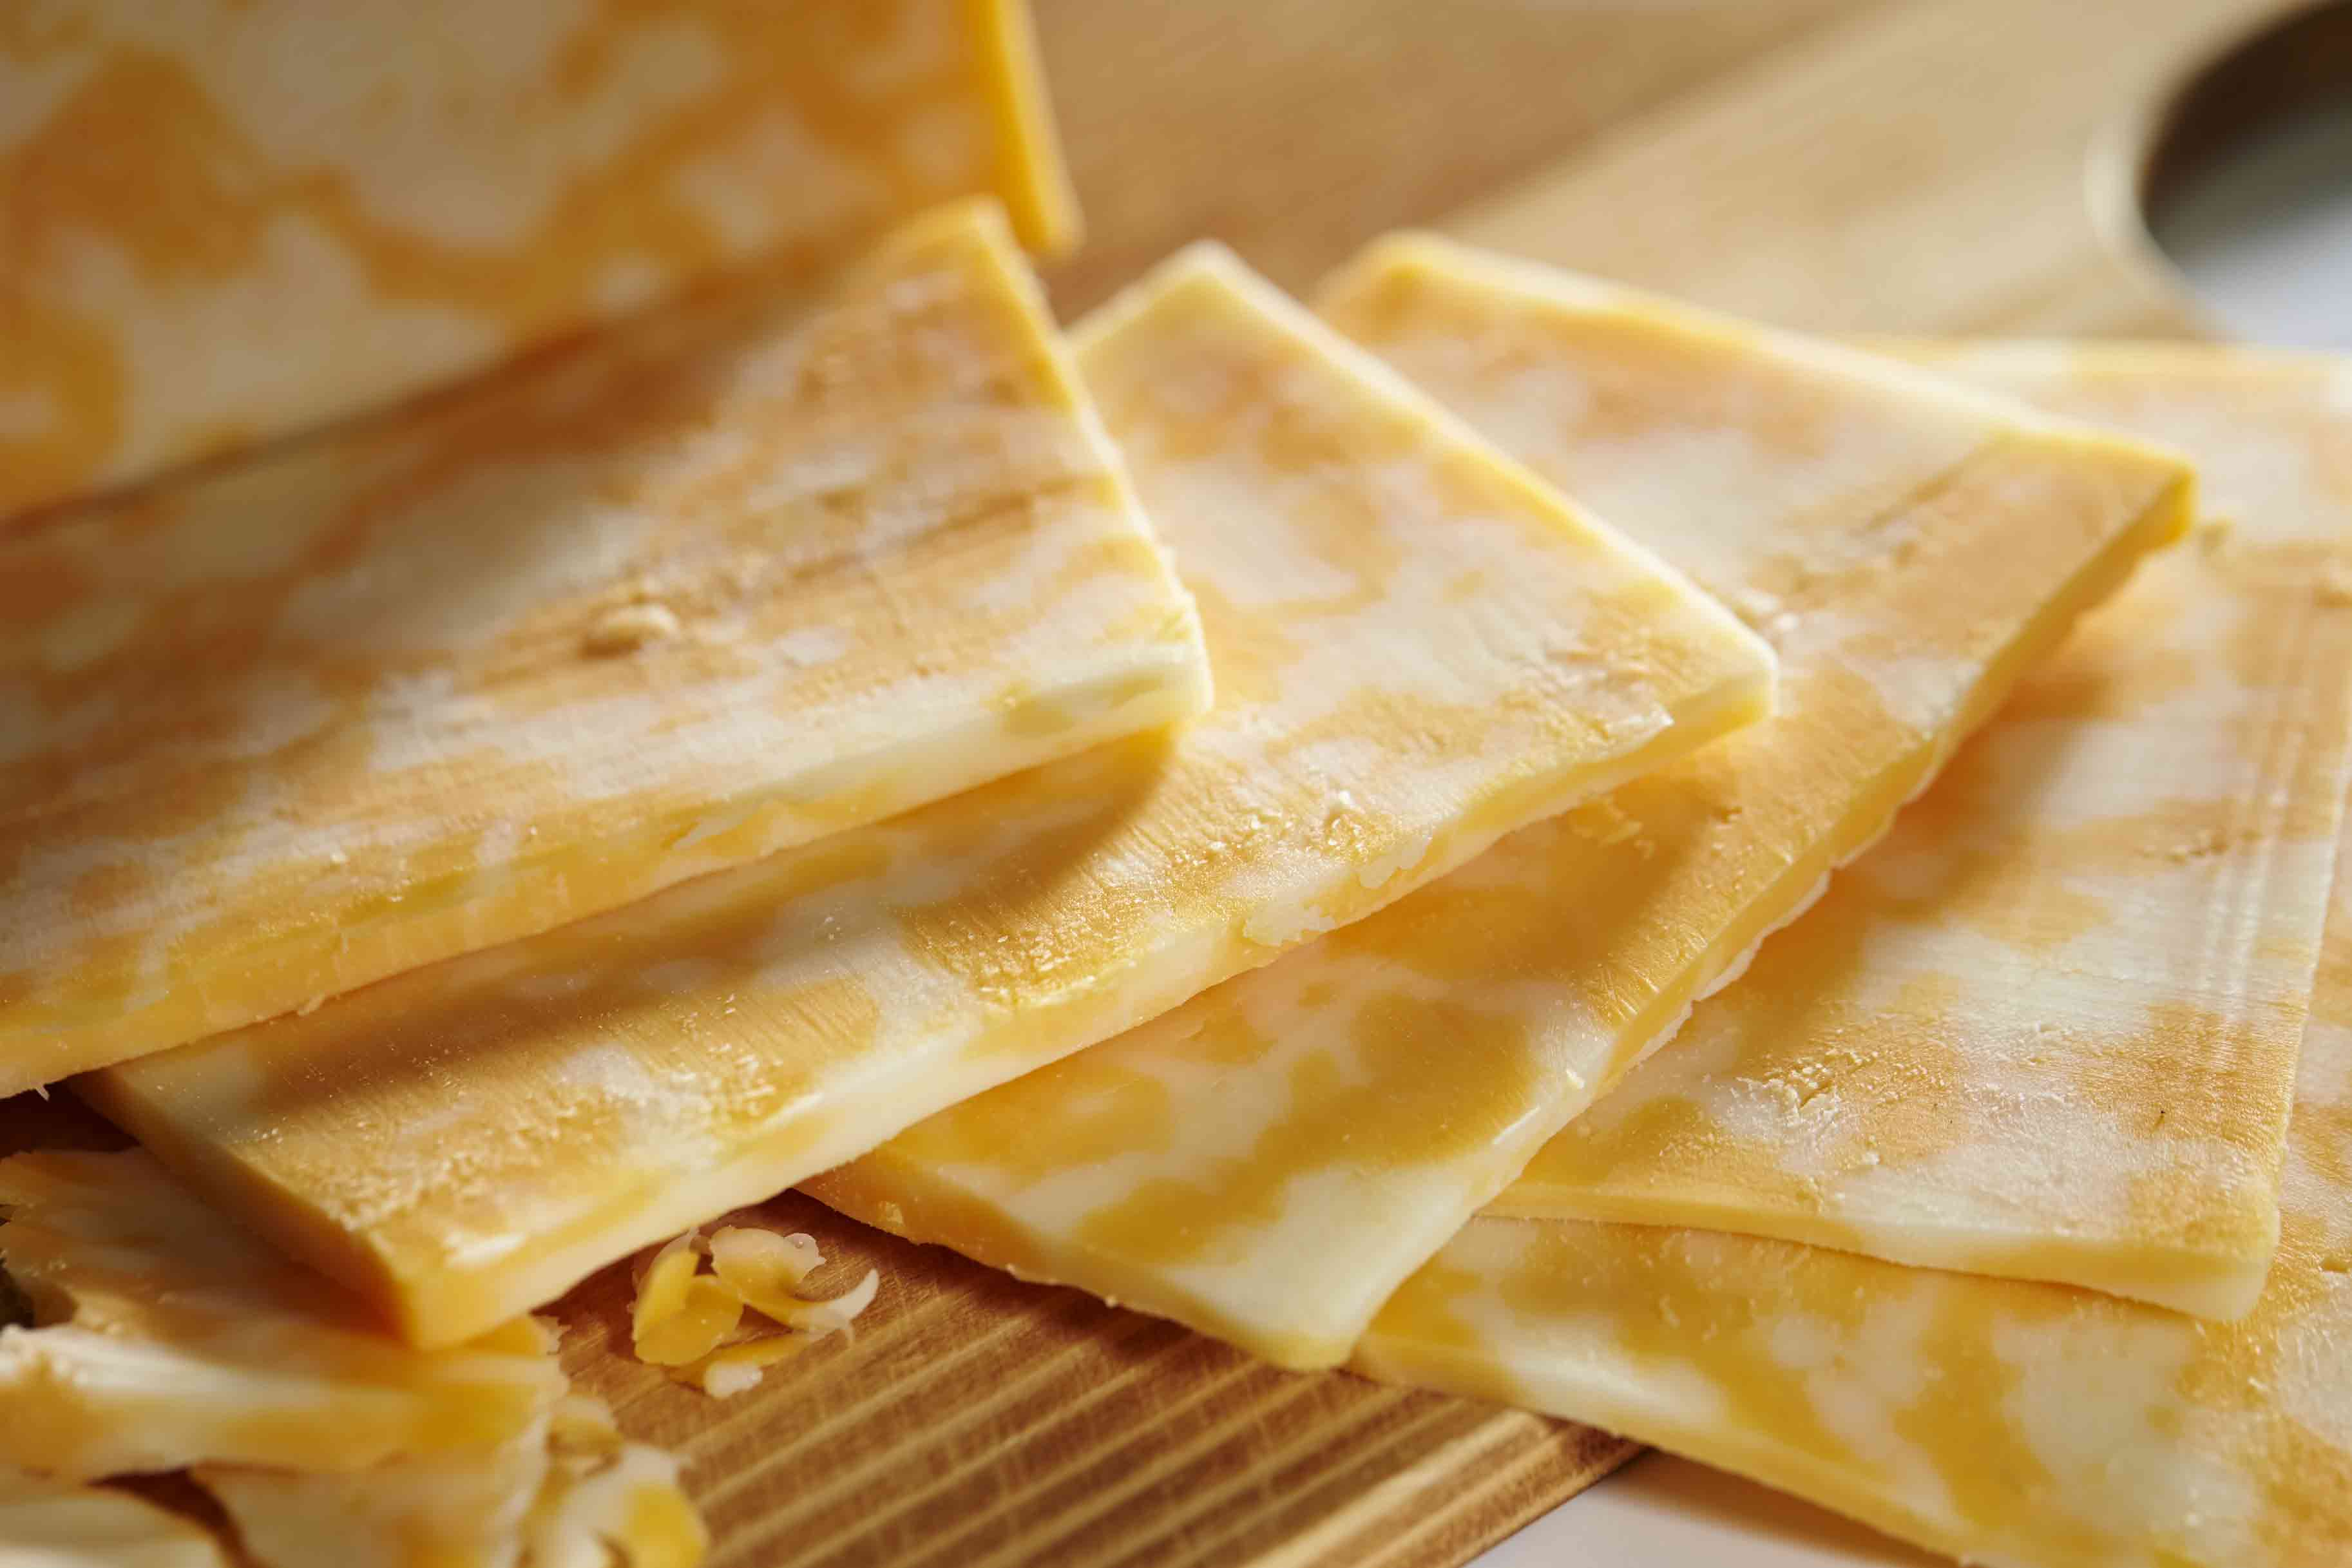 Yellow and white cheese slices